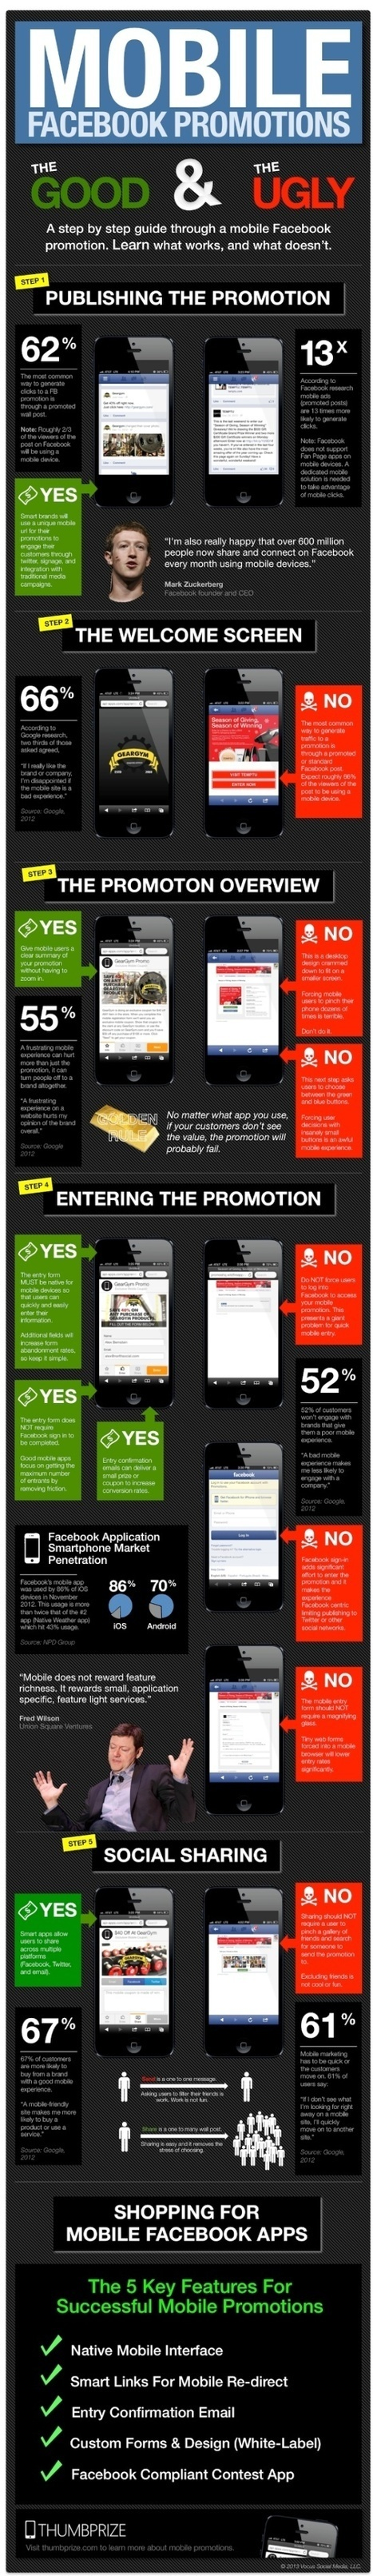 Mobile Devices & Marketing 2013 | Mobile Commerce Retail | Scoop.it